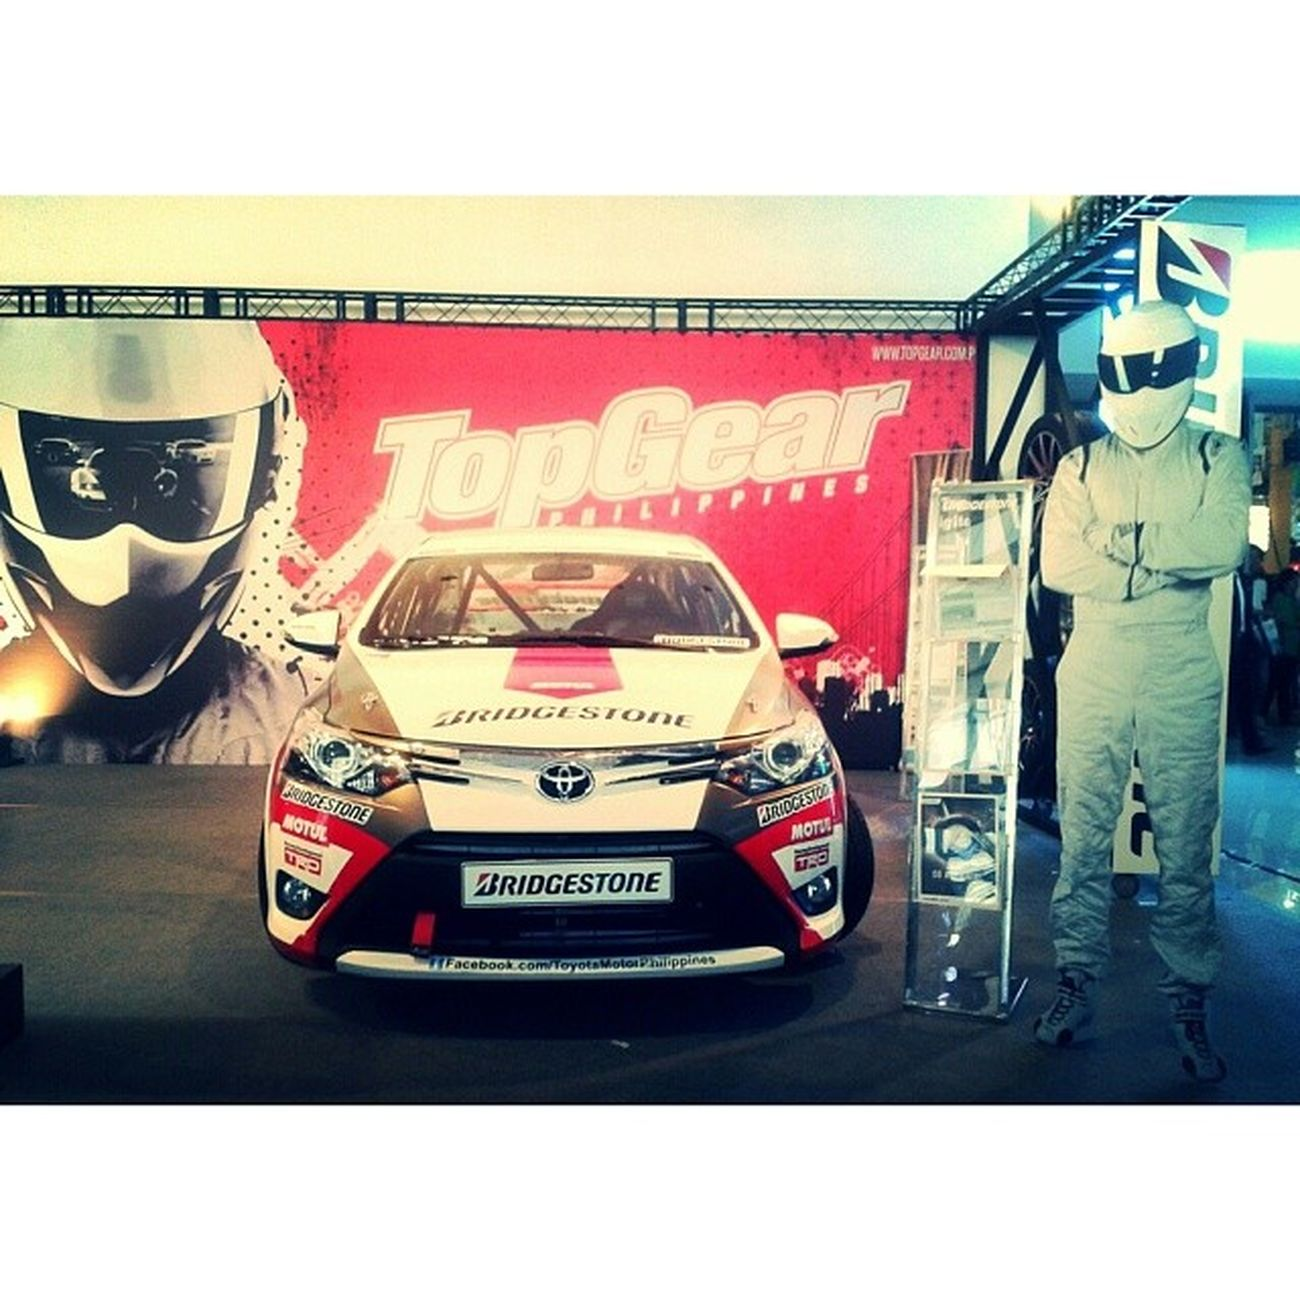 The BBC Top Gear Philippines booth at the Manila International Auto Show. And, hey, there's The Stig! BBCTopGear TopGearPhilippines MIAS2014 Cars ManilaInternationalAutoShow automotive wheels autoshow worldtradecenter TheStig